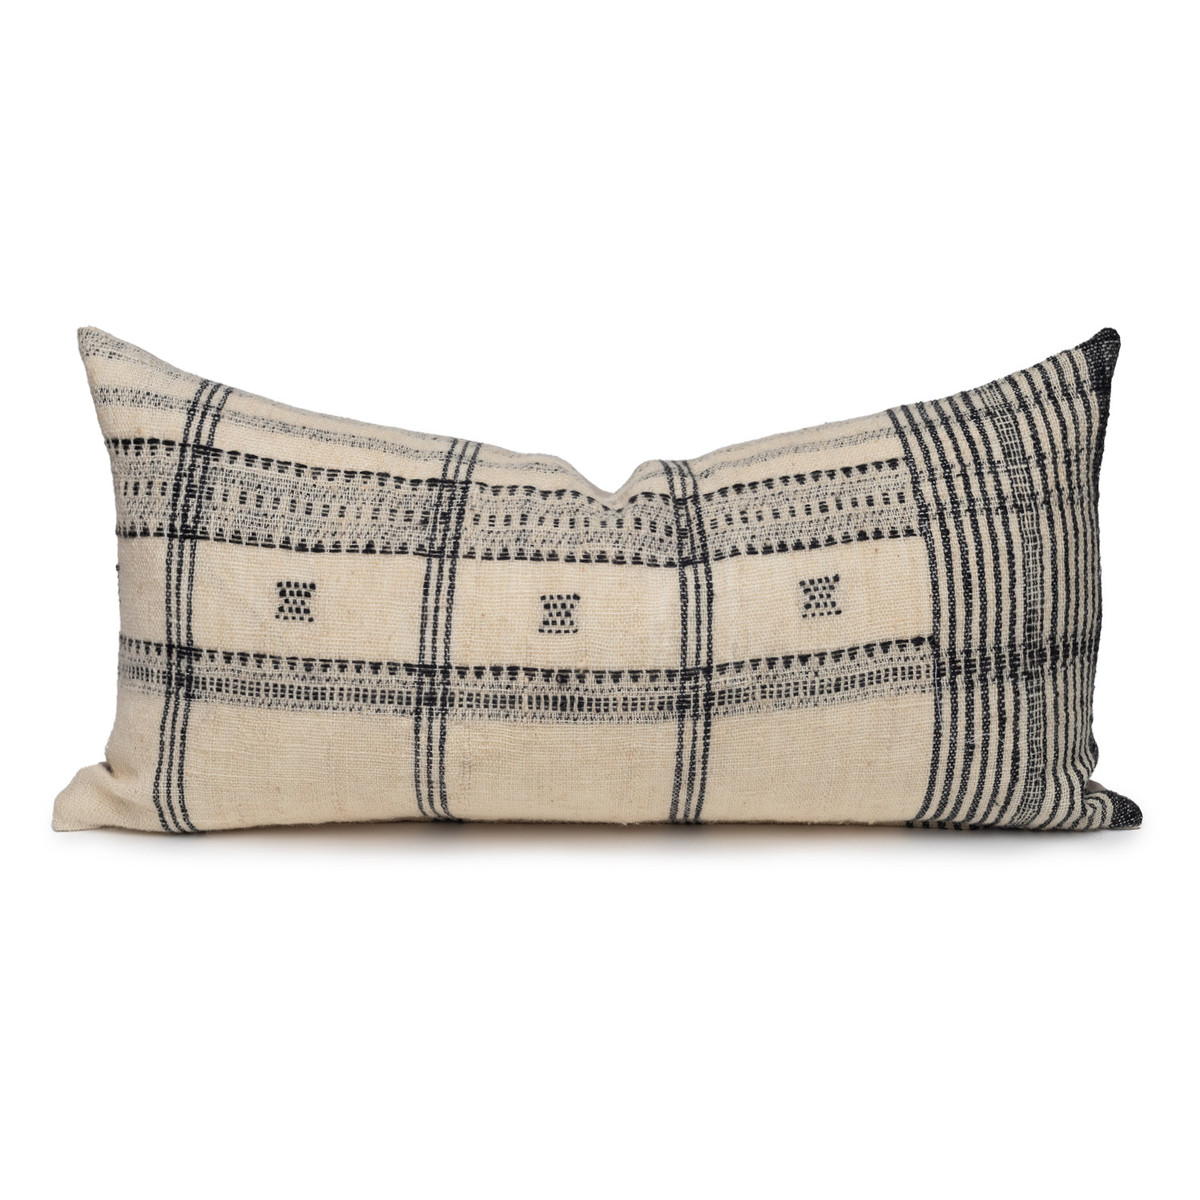 Rocco Lumbar Pillow in Black & Ivory, Hand Loomed Indian Wool-1427- Front View